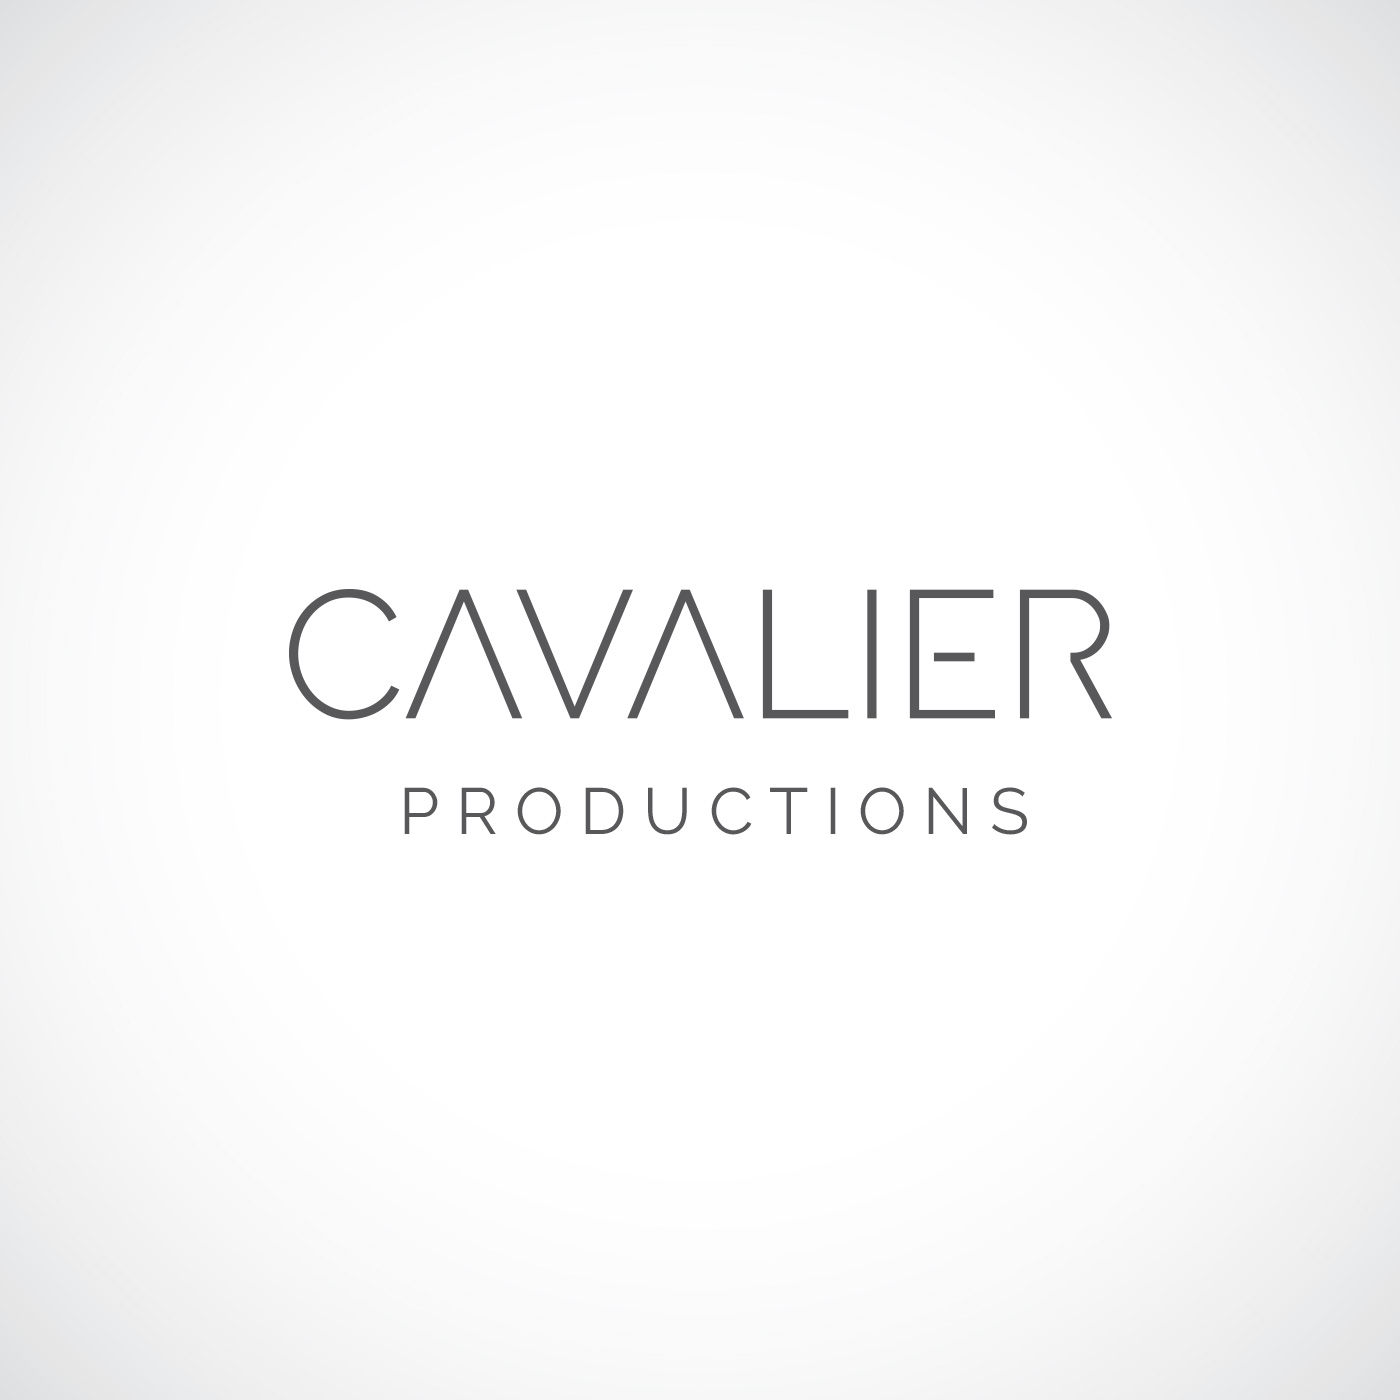 Cavalier Productions